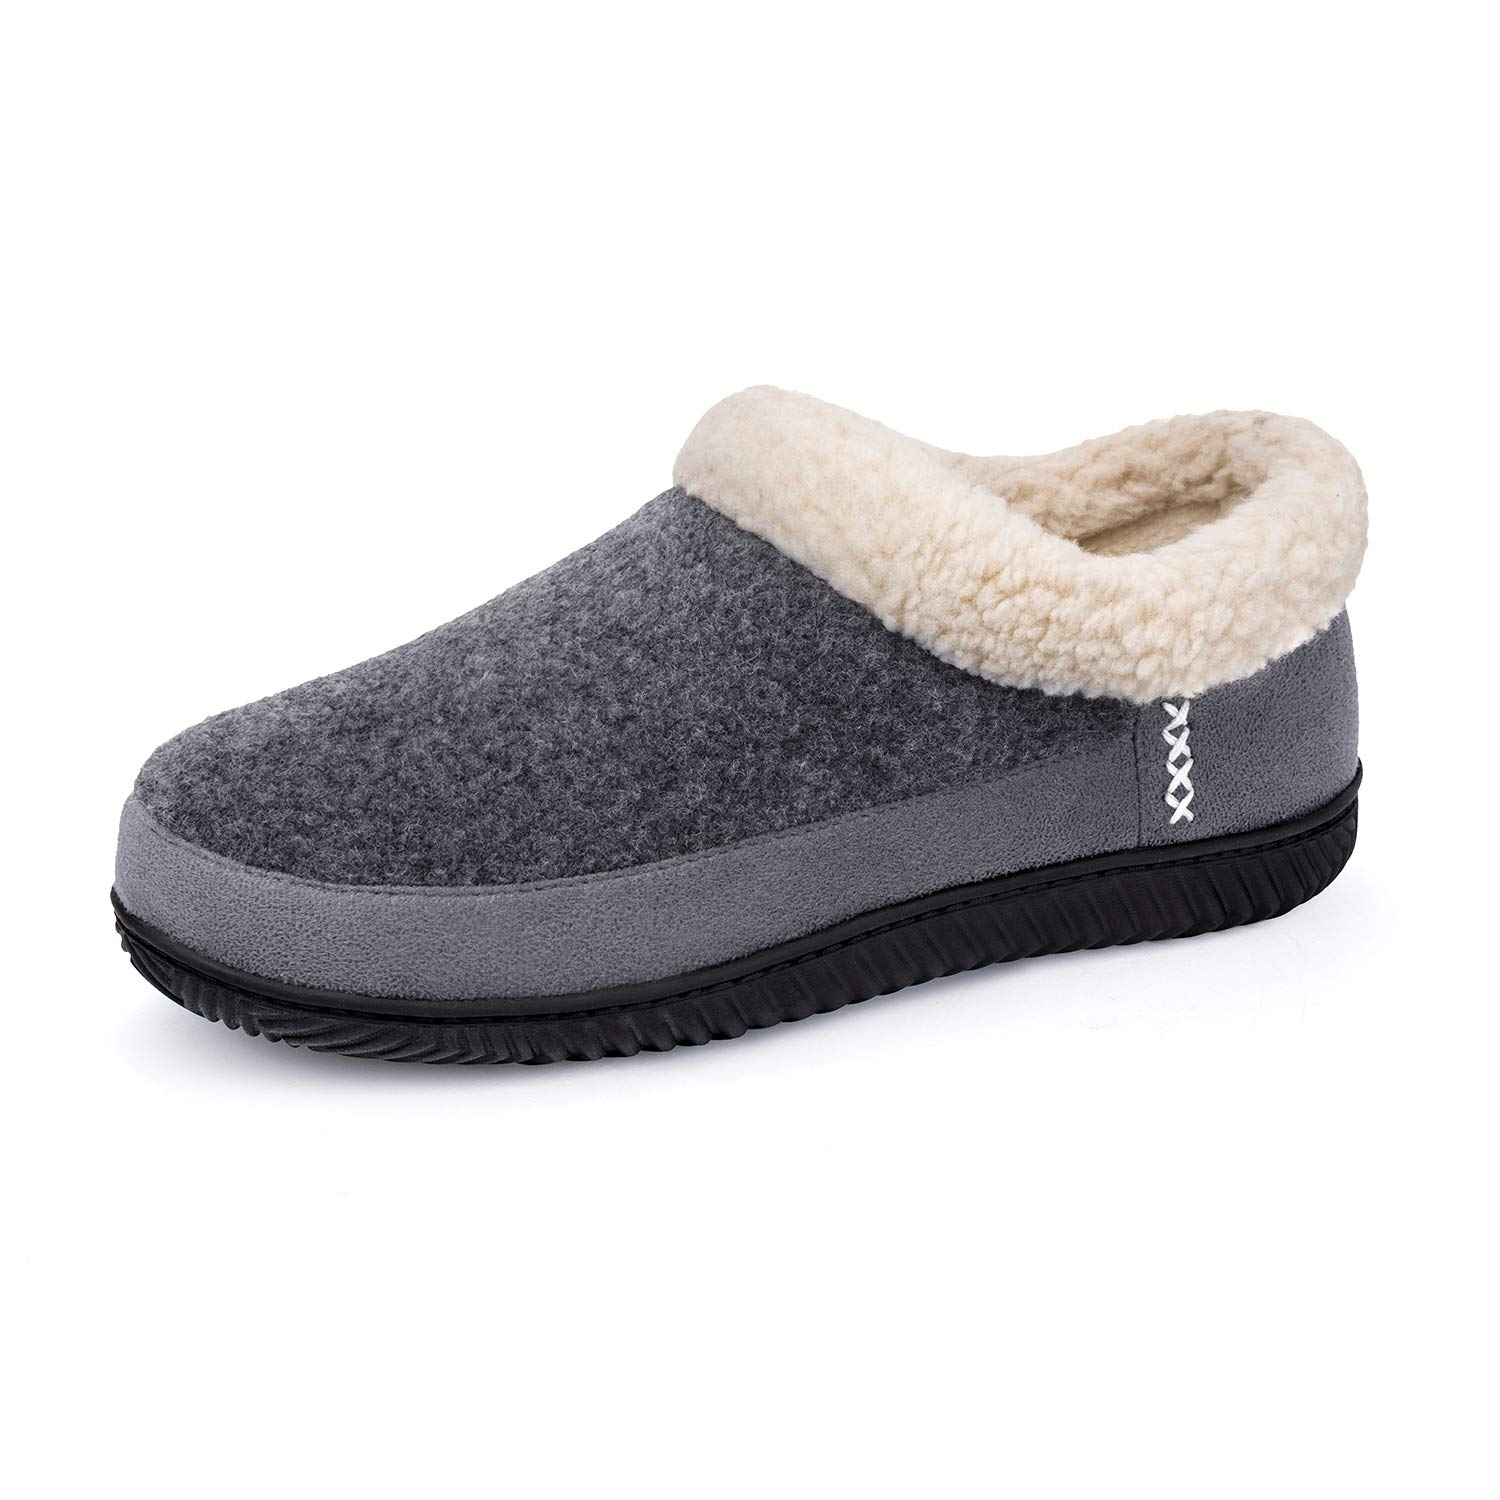 Image of Men's House Shoes with Memory Foam - Also available in Coffee Brown